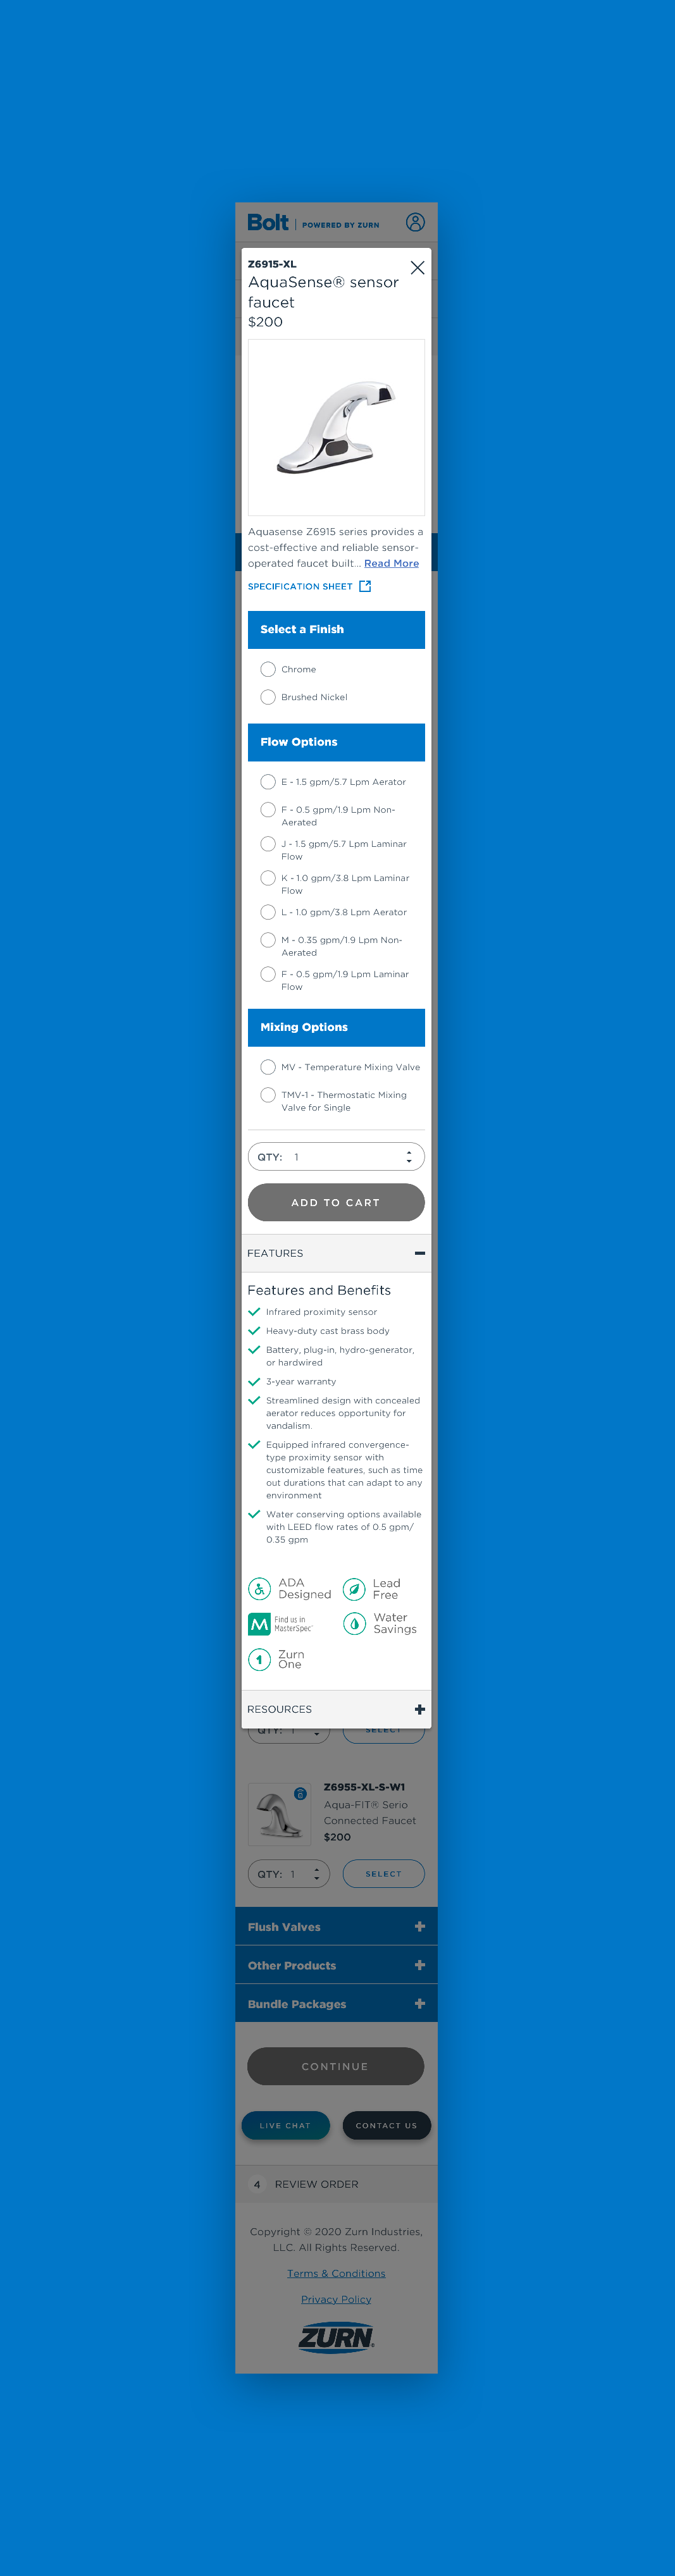 Zurn Mobile Advanced Product Options Modal